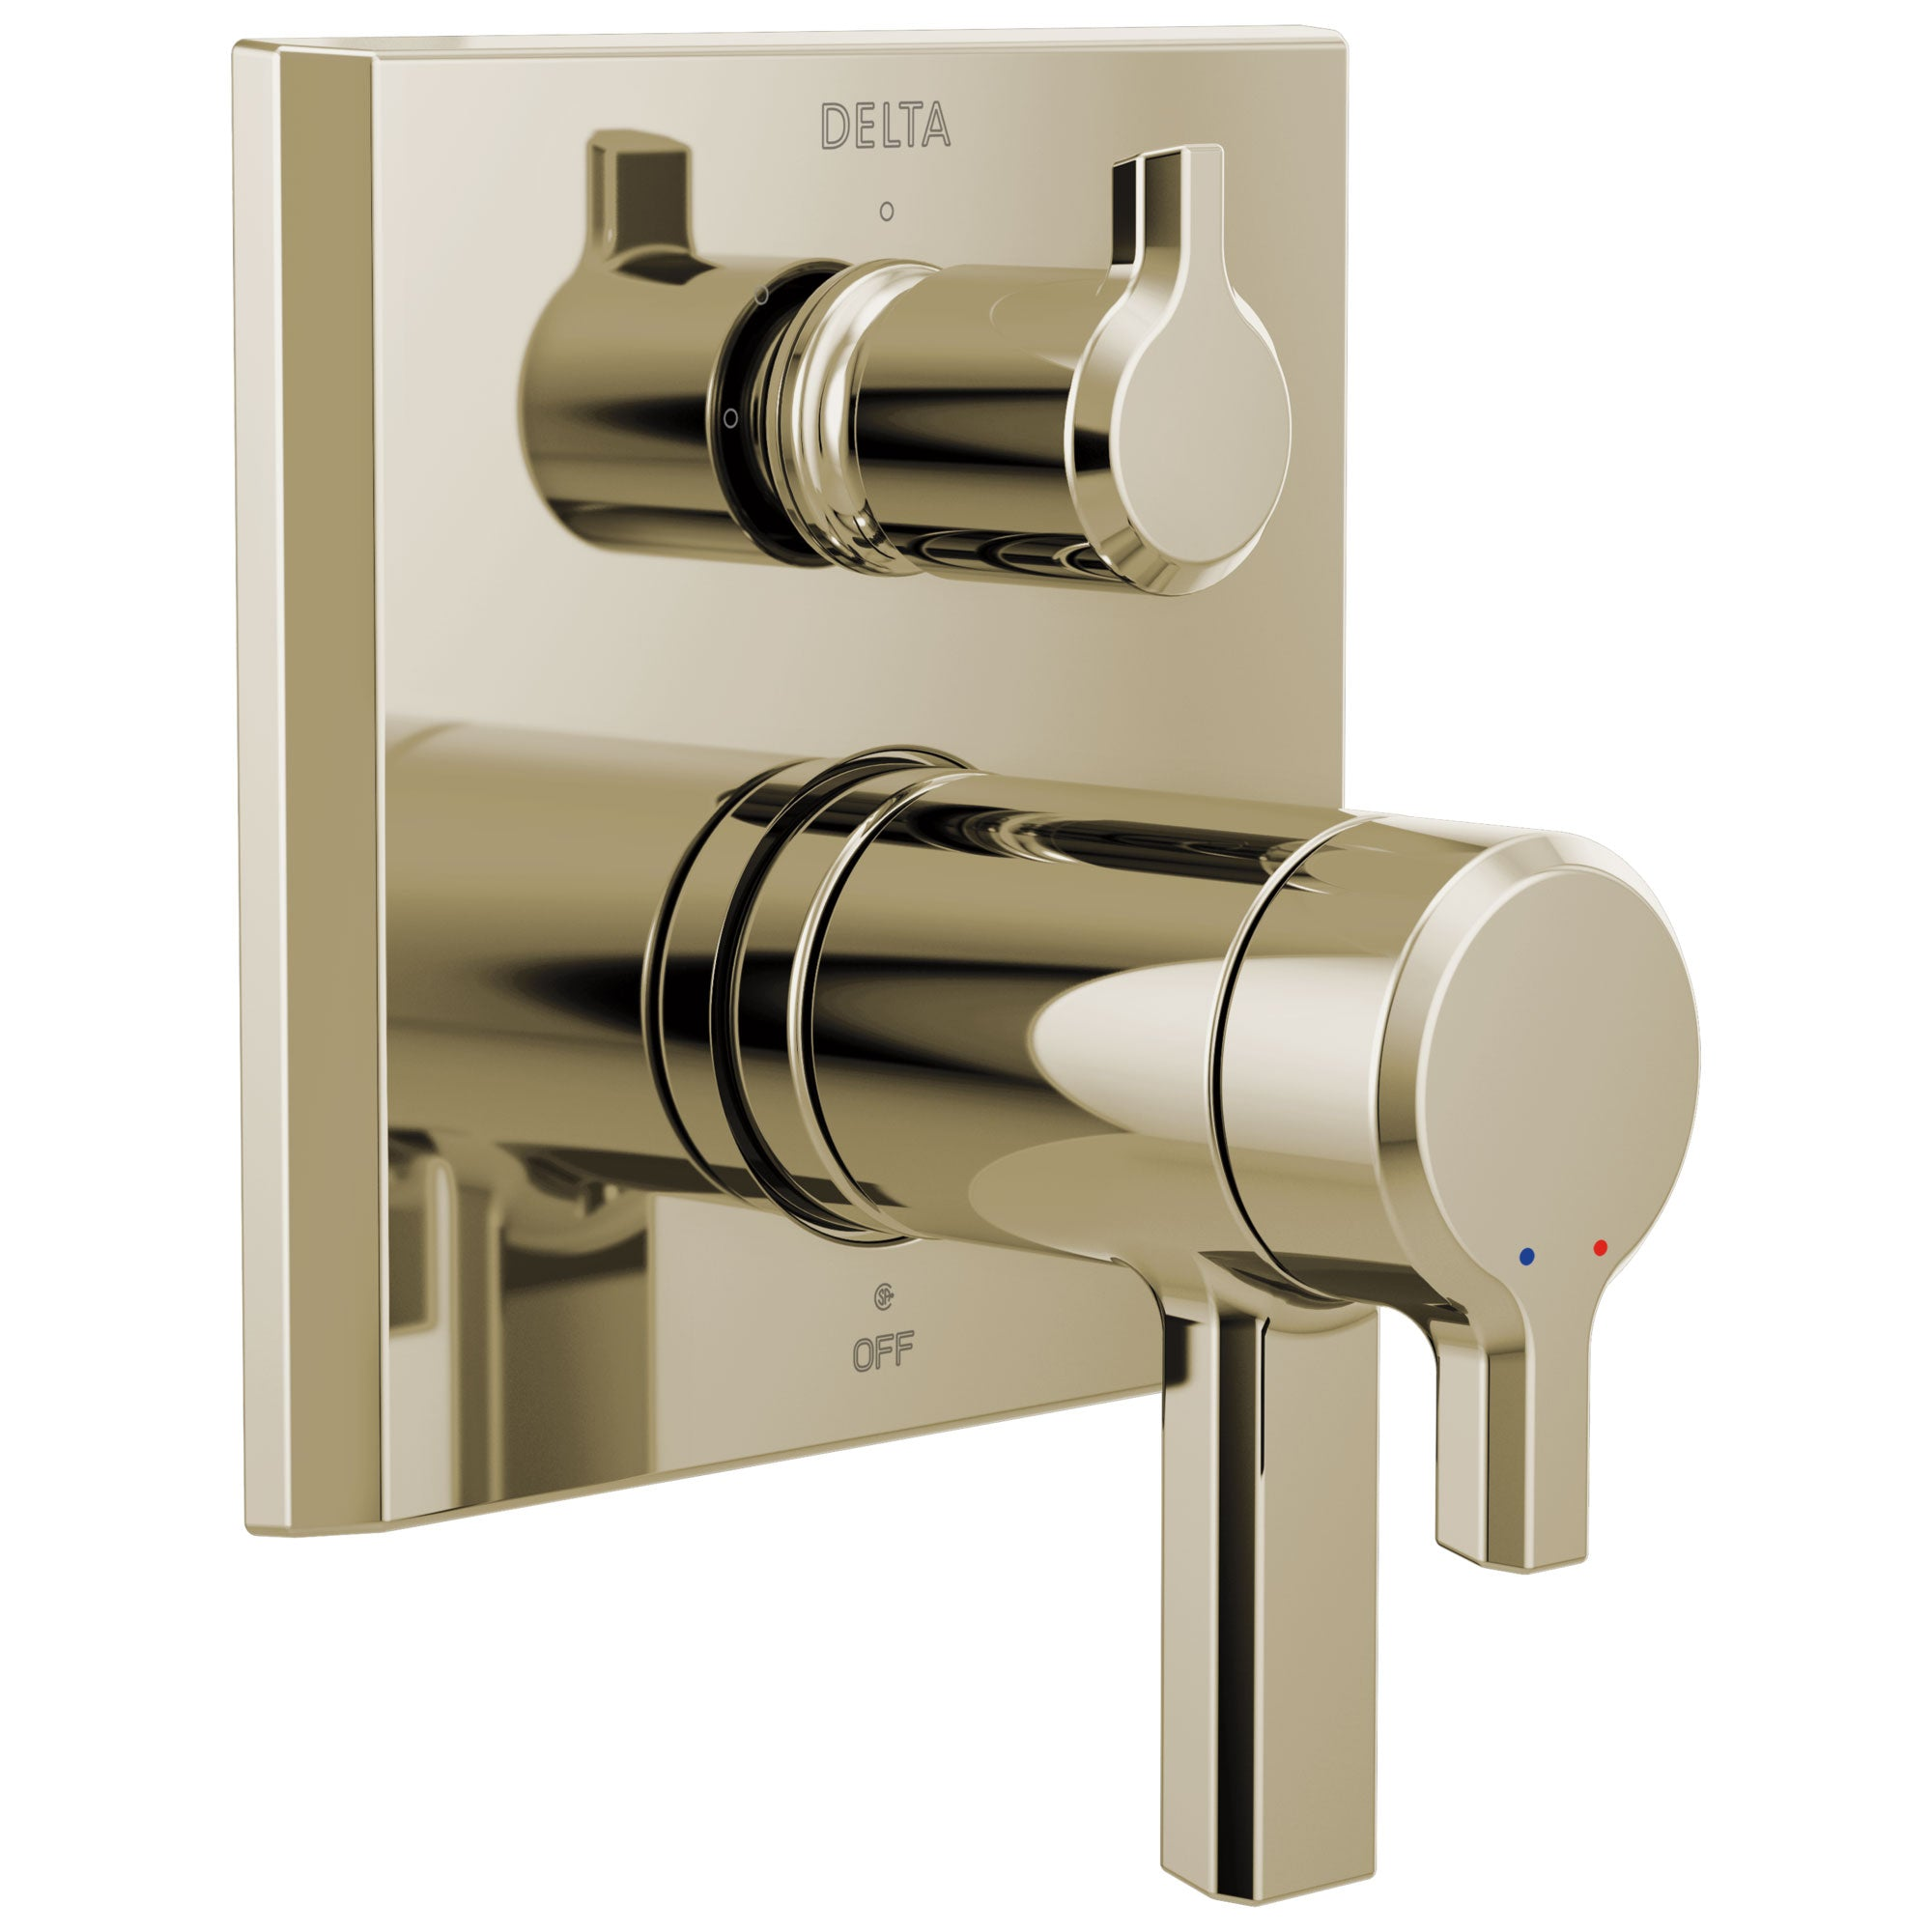 Delta Pivotal Modern Polished Nickel Finish Thermostatic Shower System Control with 3-Setting Integrated Diverter Includes Valve and Handles D3089V